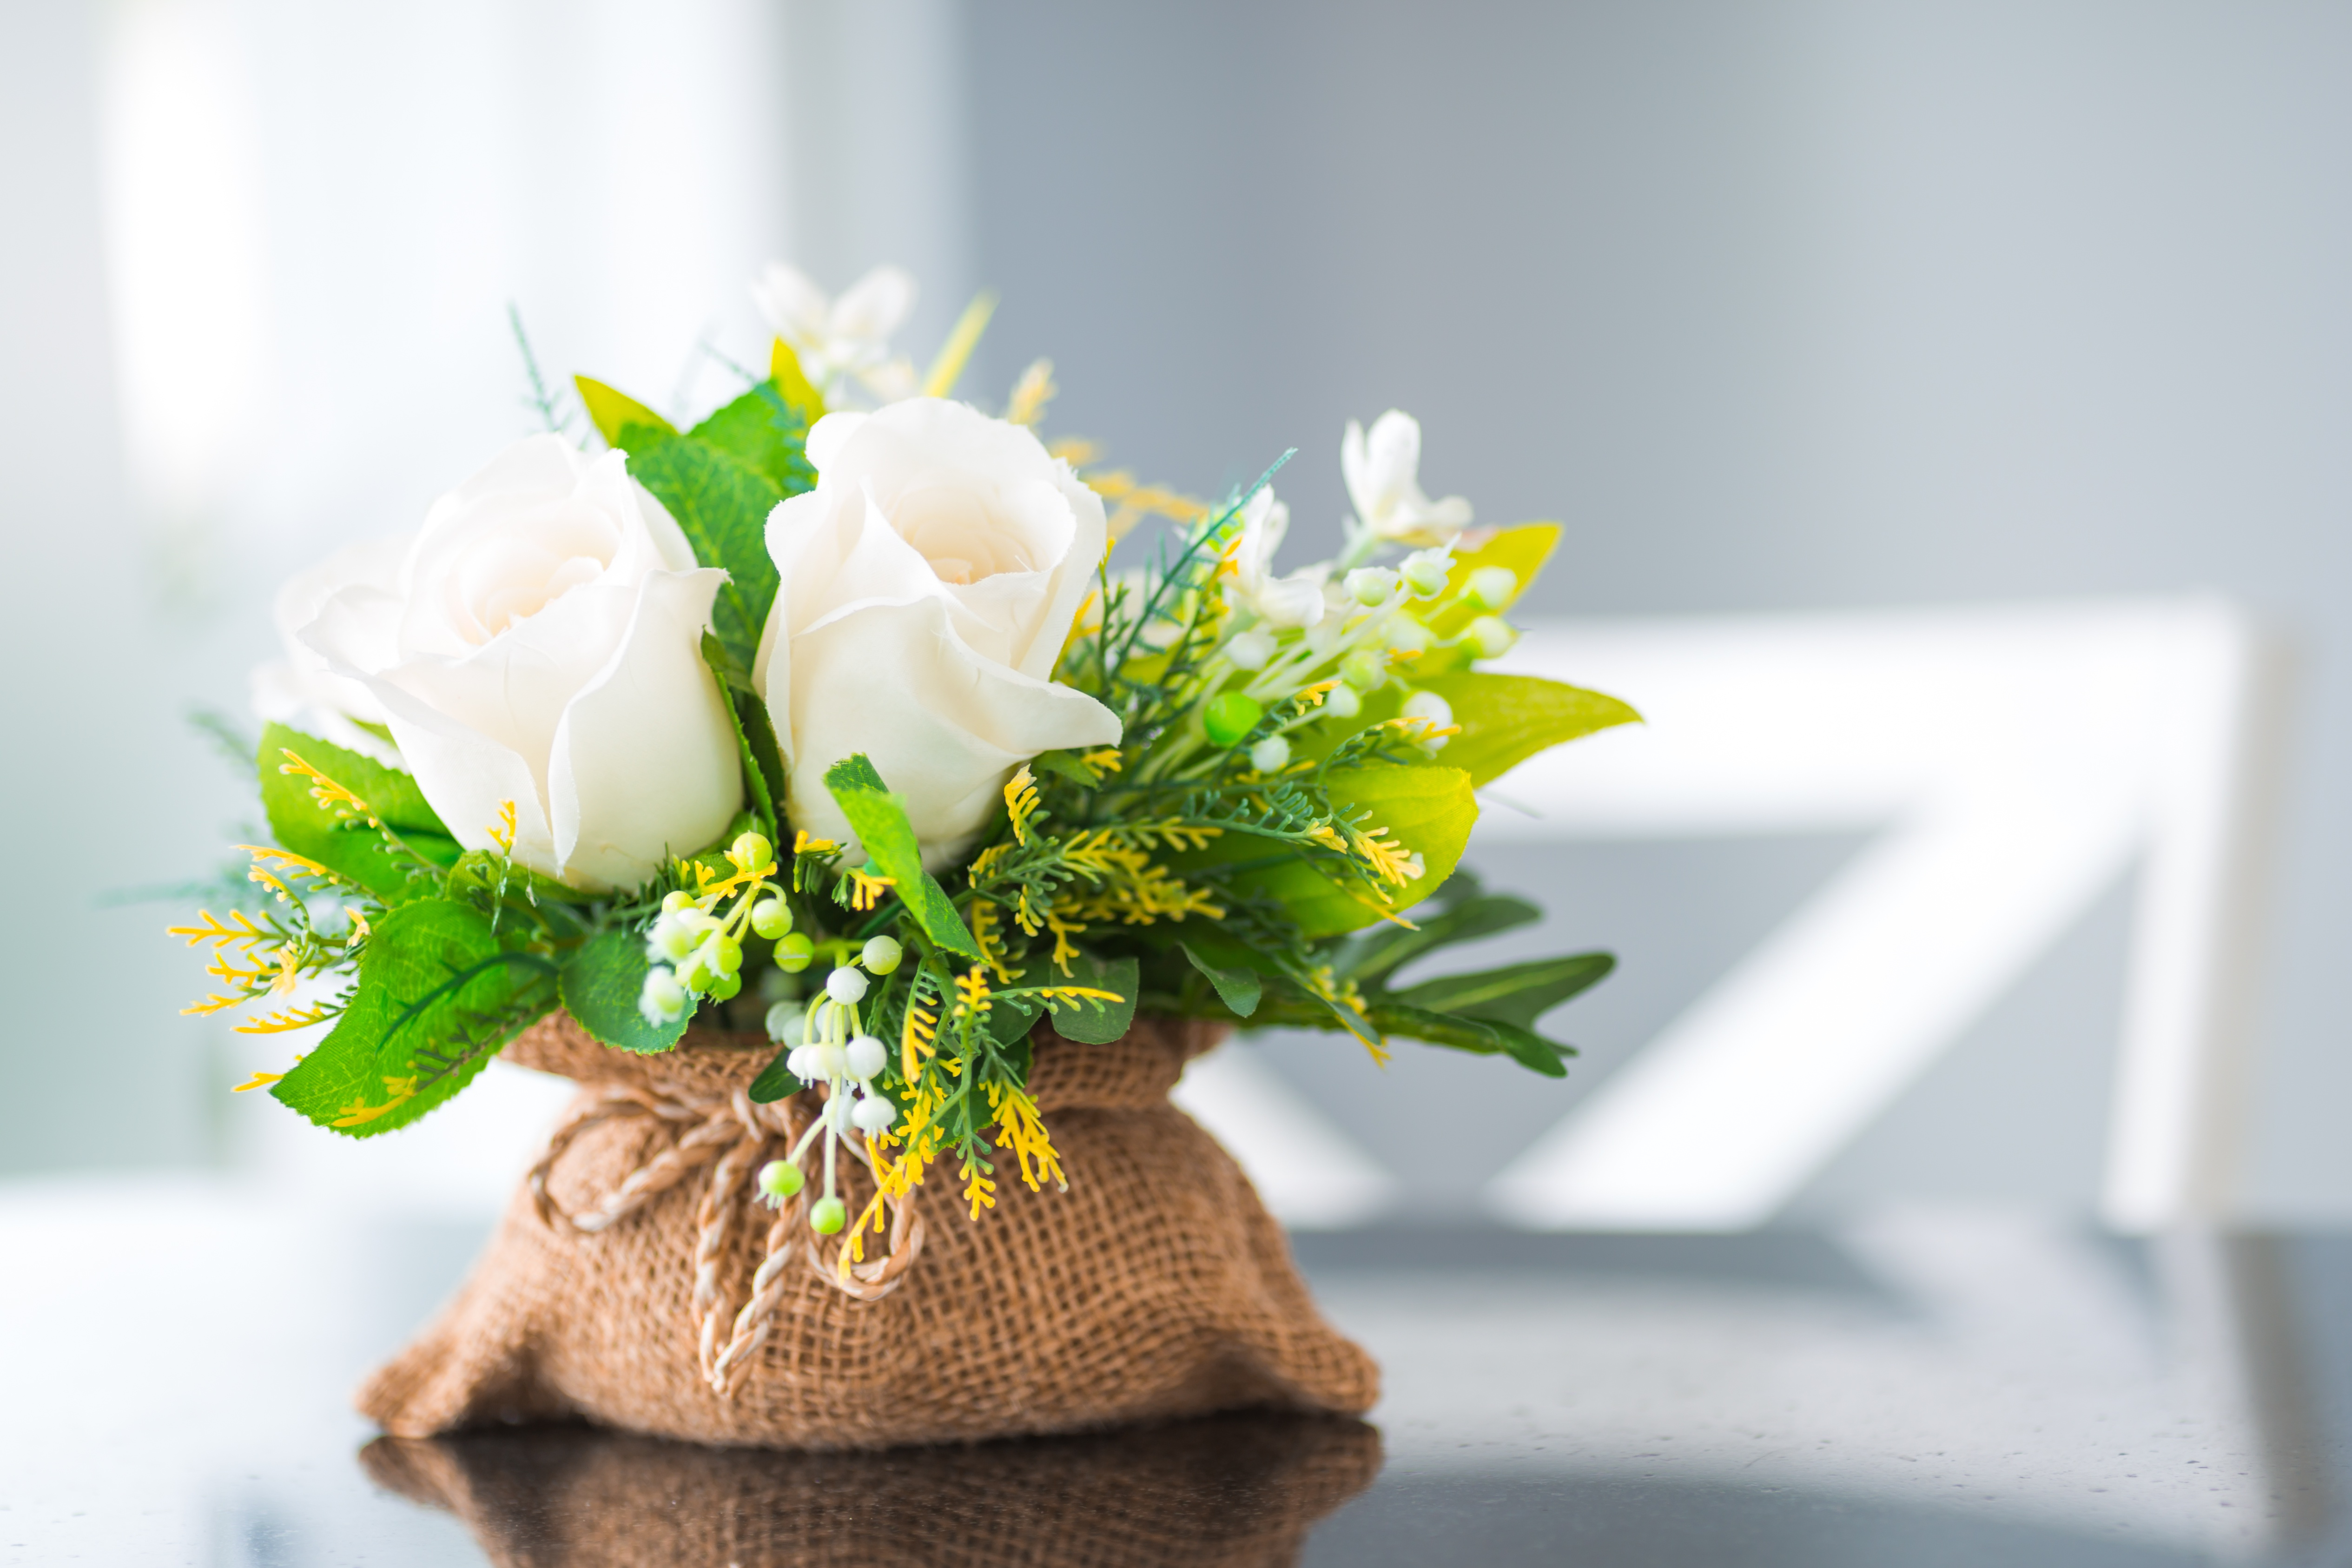 Desktop Wallpapers Bokeh Bouquets rose flower Lilies of the valley Table blurred background bouquet Roses Flowers